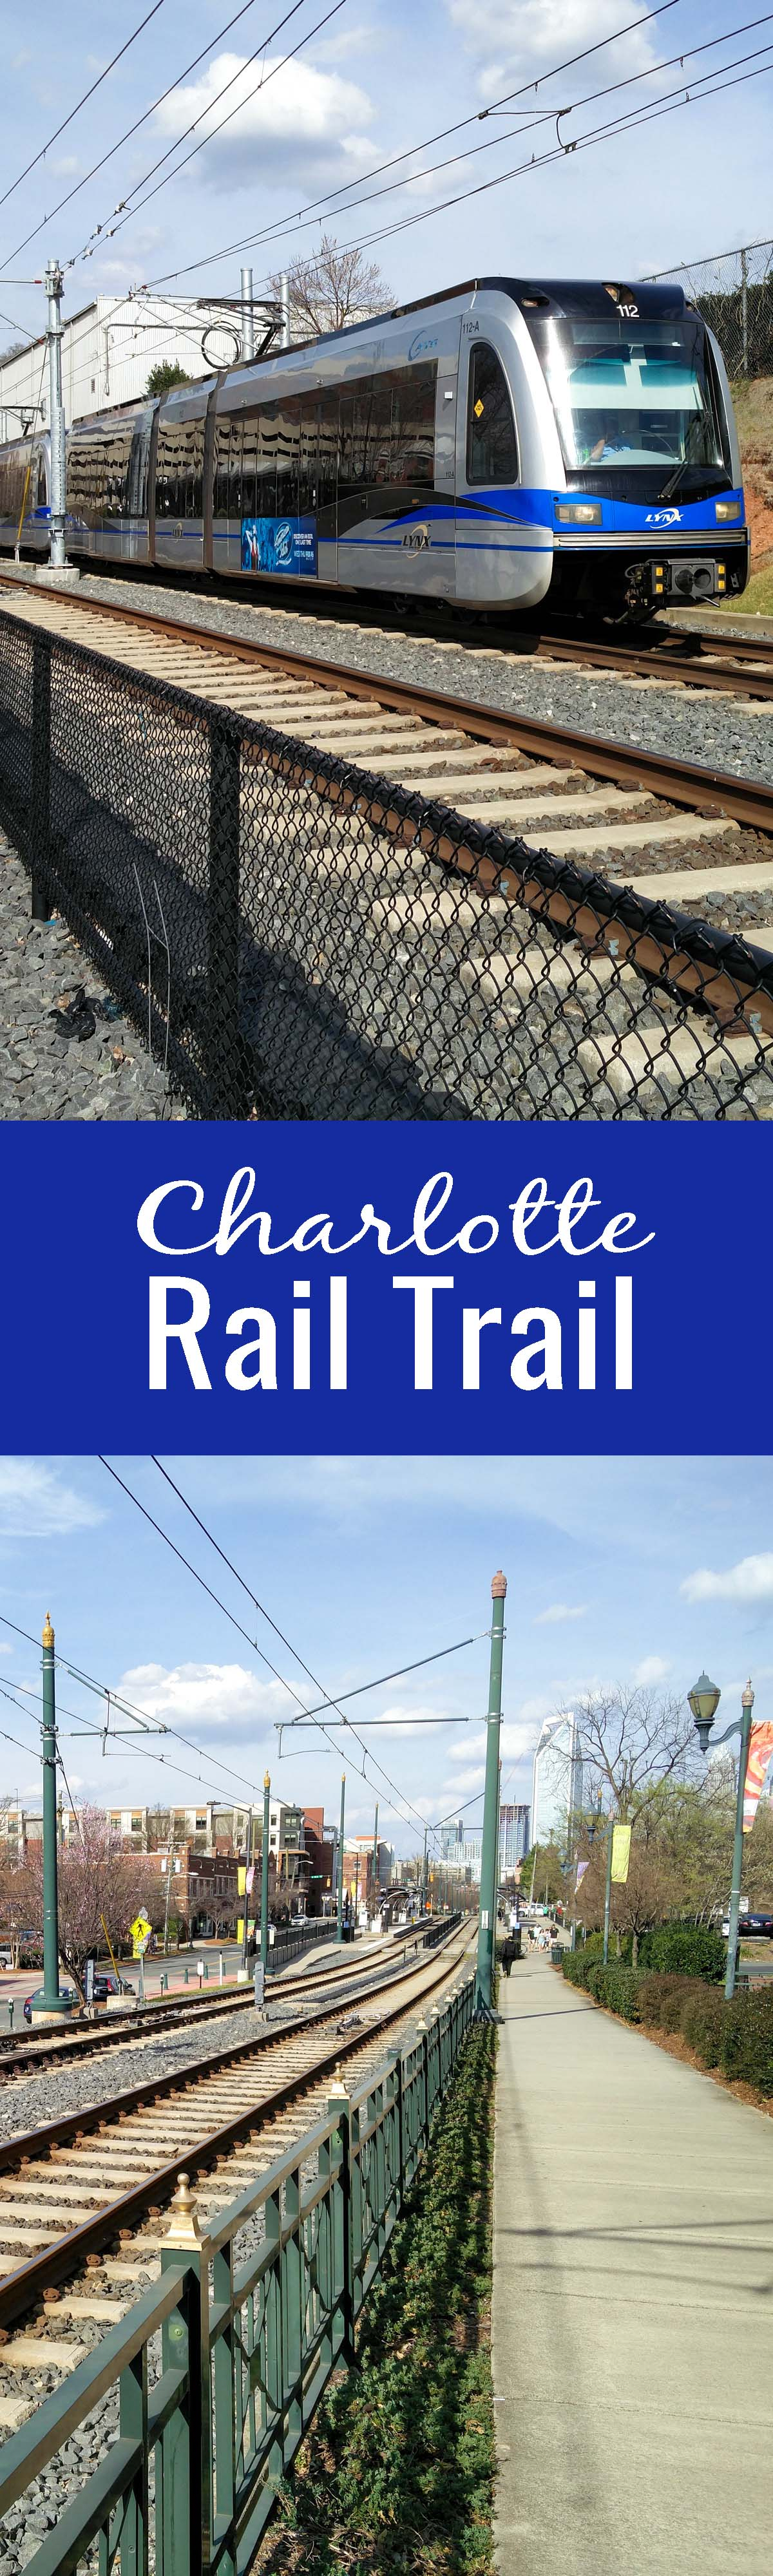 The Charlotte Rail Trail is a great way to explore Charlotte from Uptown through South End. There are plenty of restaurants, shops, pocket parks, and breweries along the way!